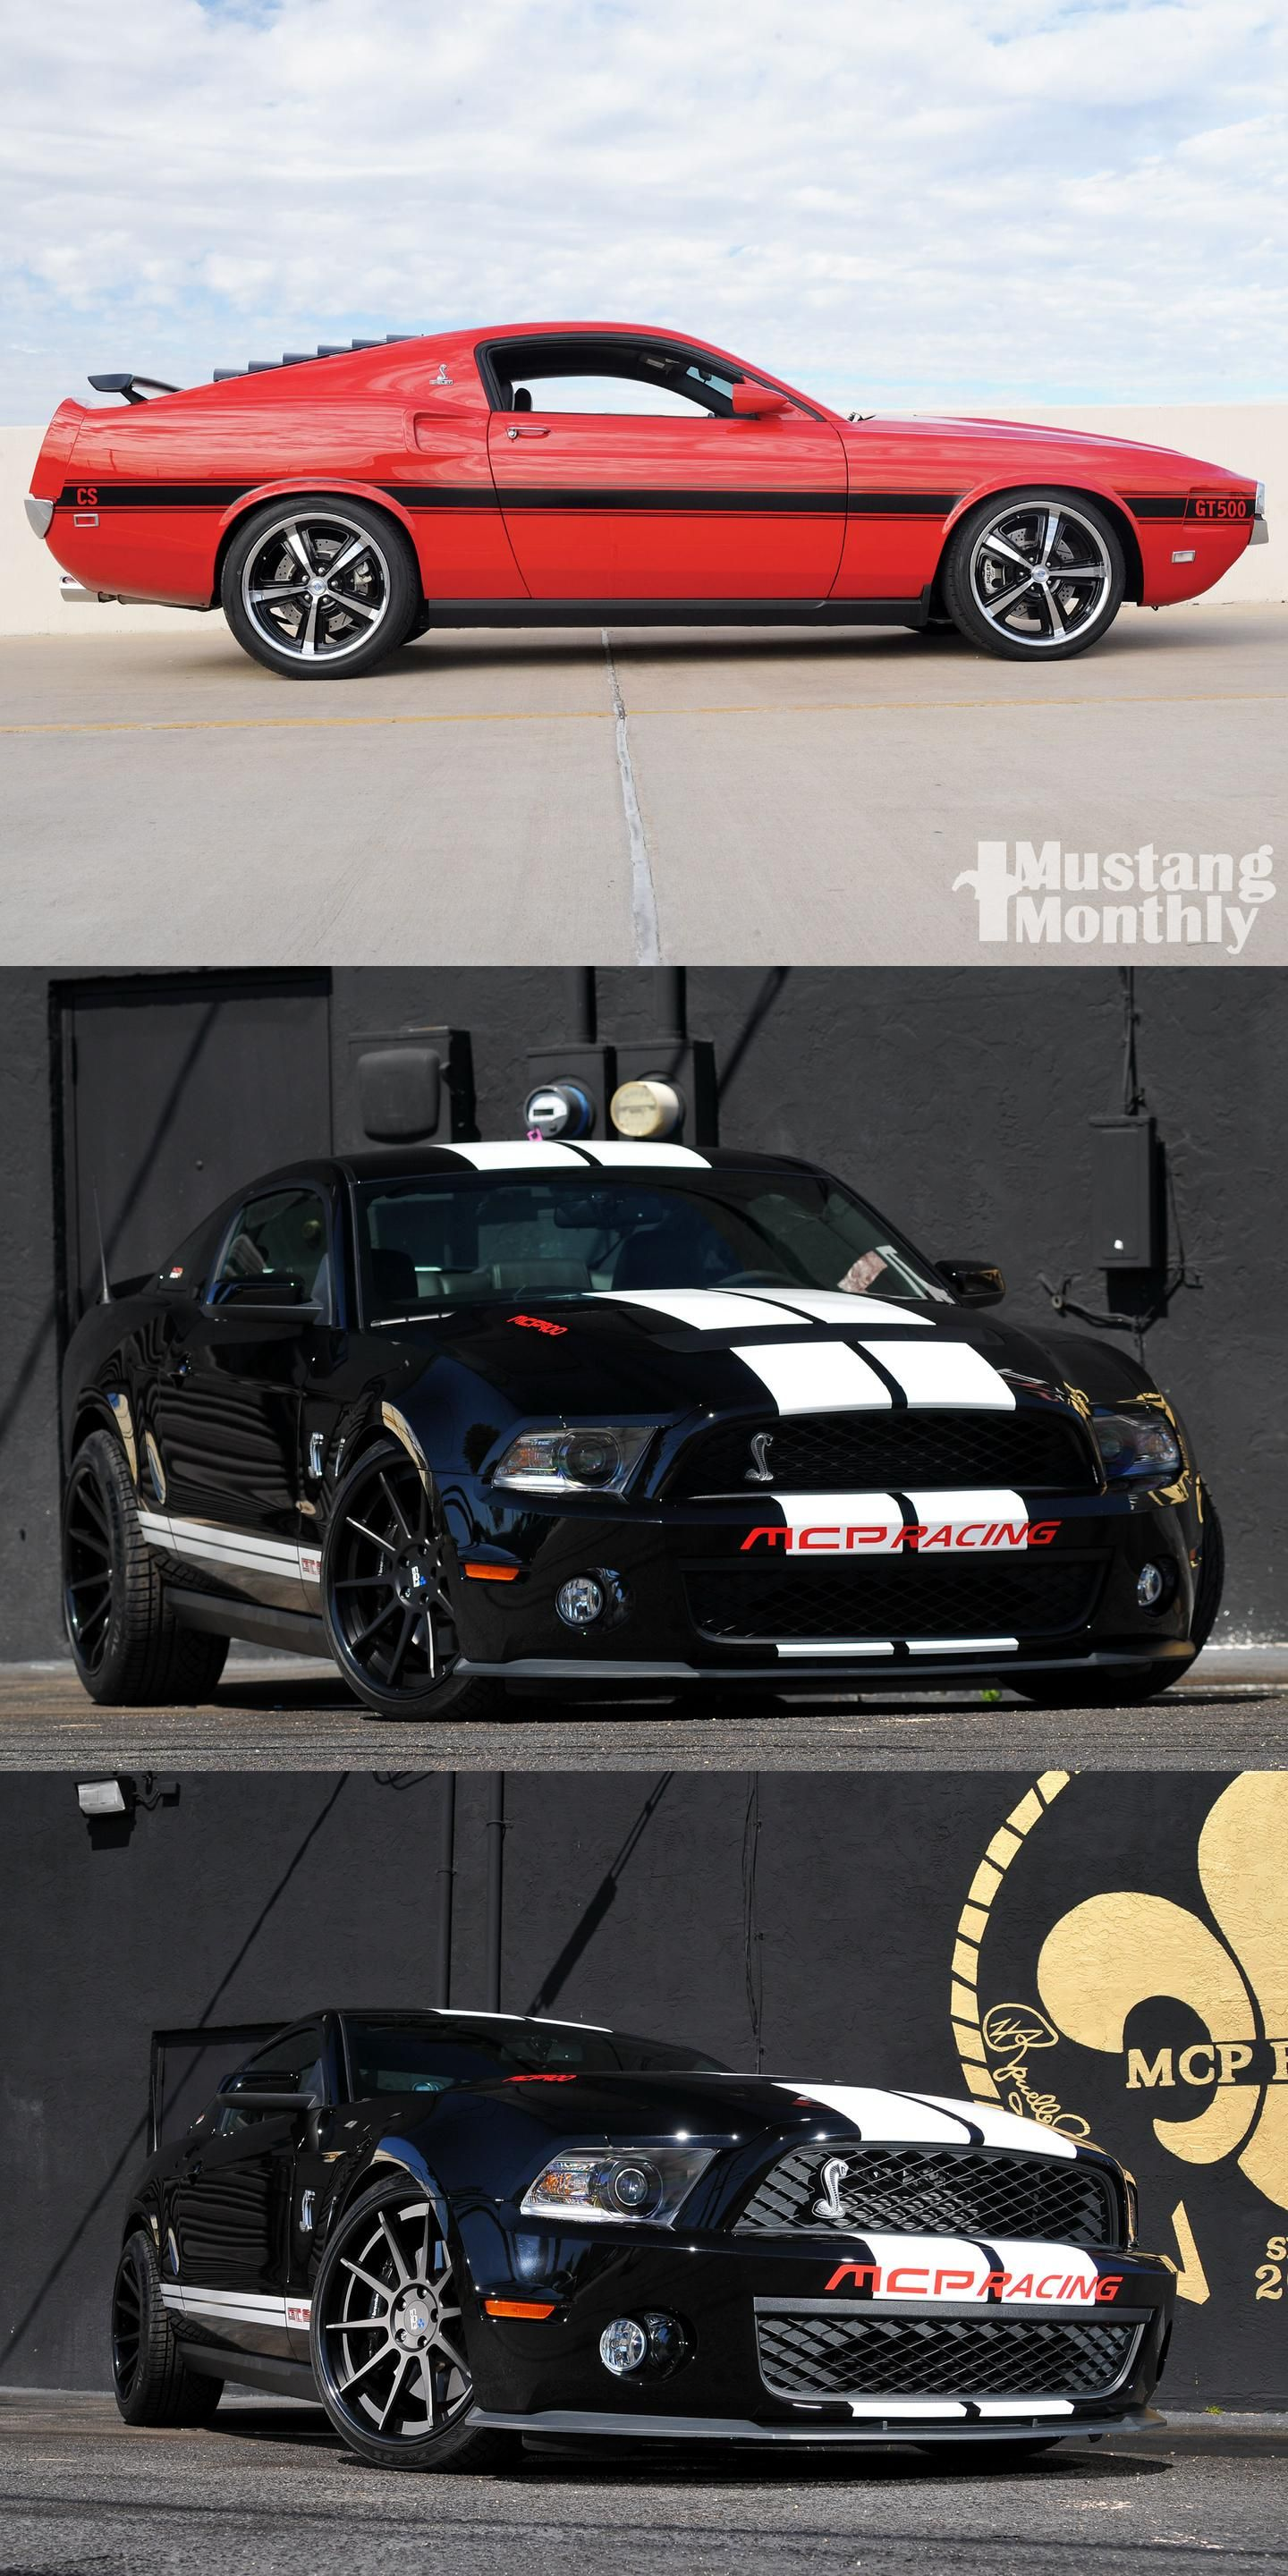 Ford mustang shelby cobra ford mustang shelby cobra mustang mach 1 shelby gt500